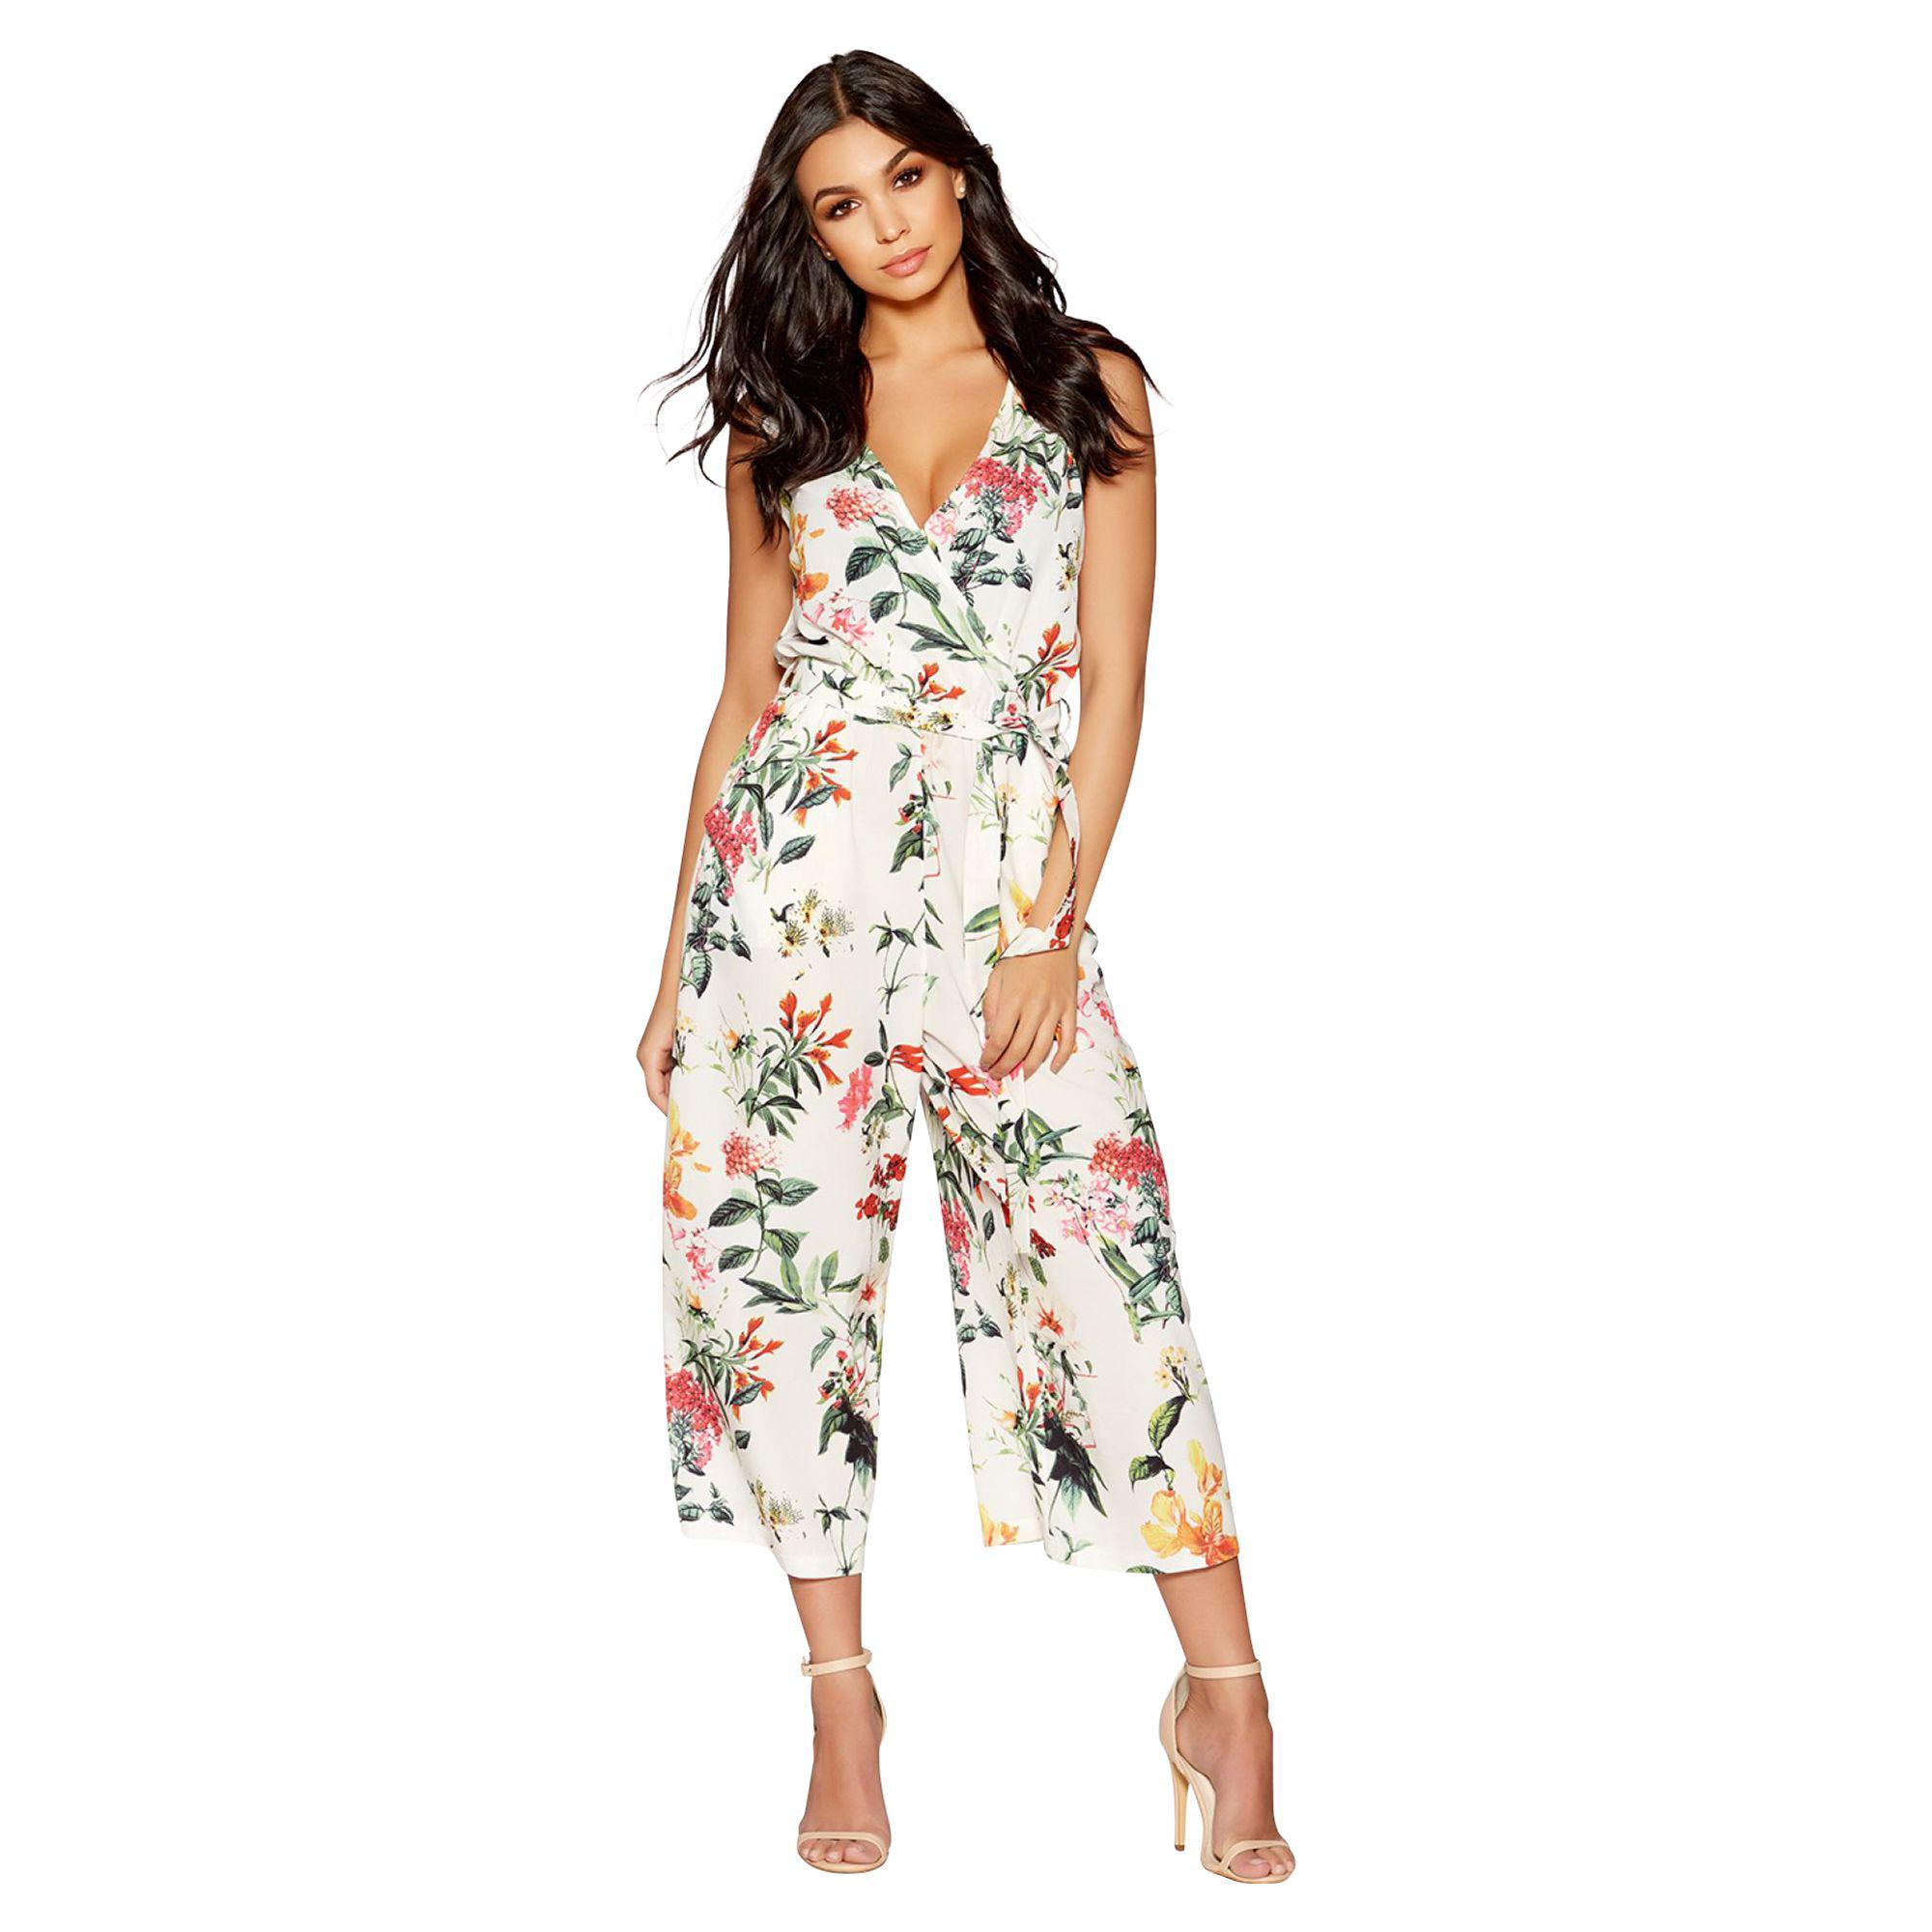 976f7cedcf2 Quiz White And Orange Floral Wrap Jumpsuit in White - Lyst